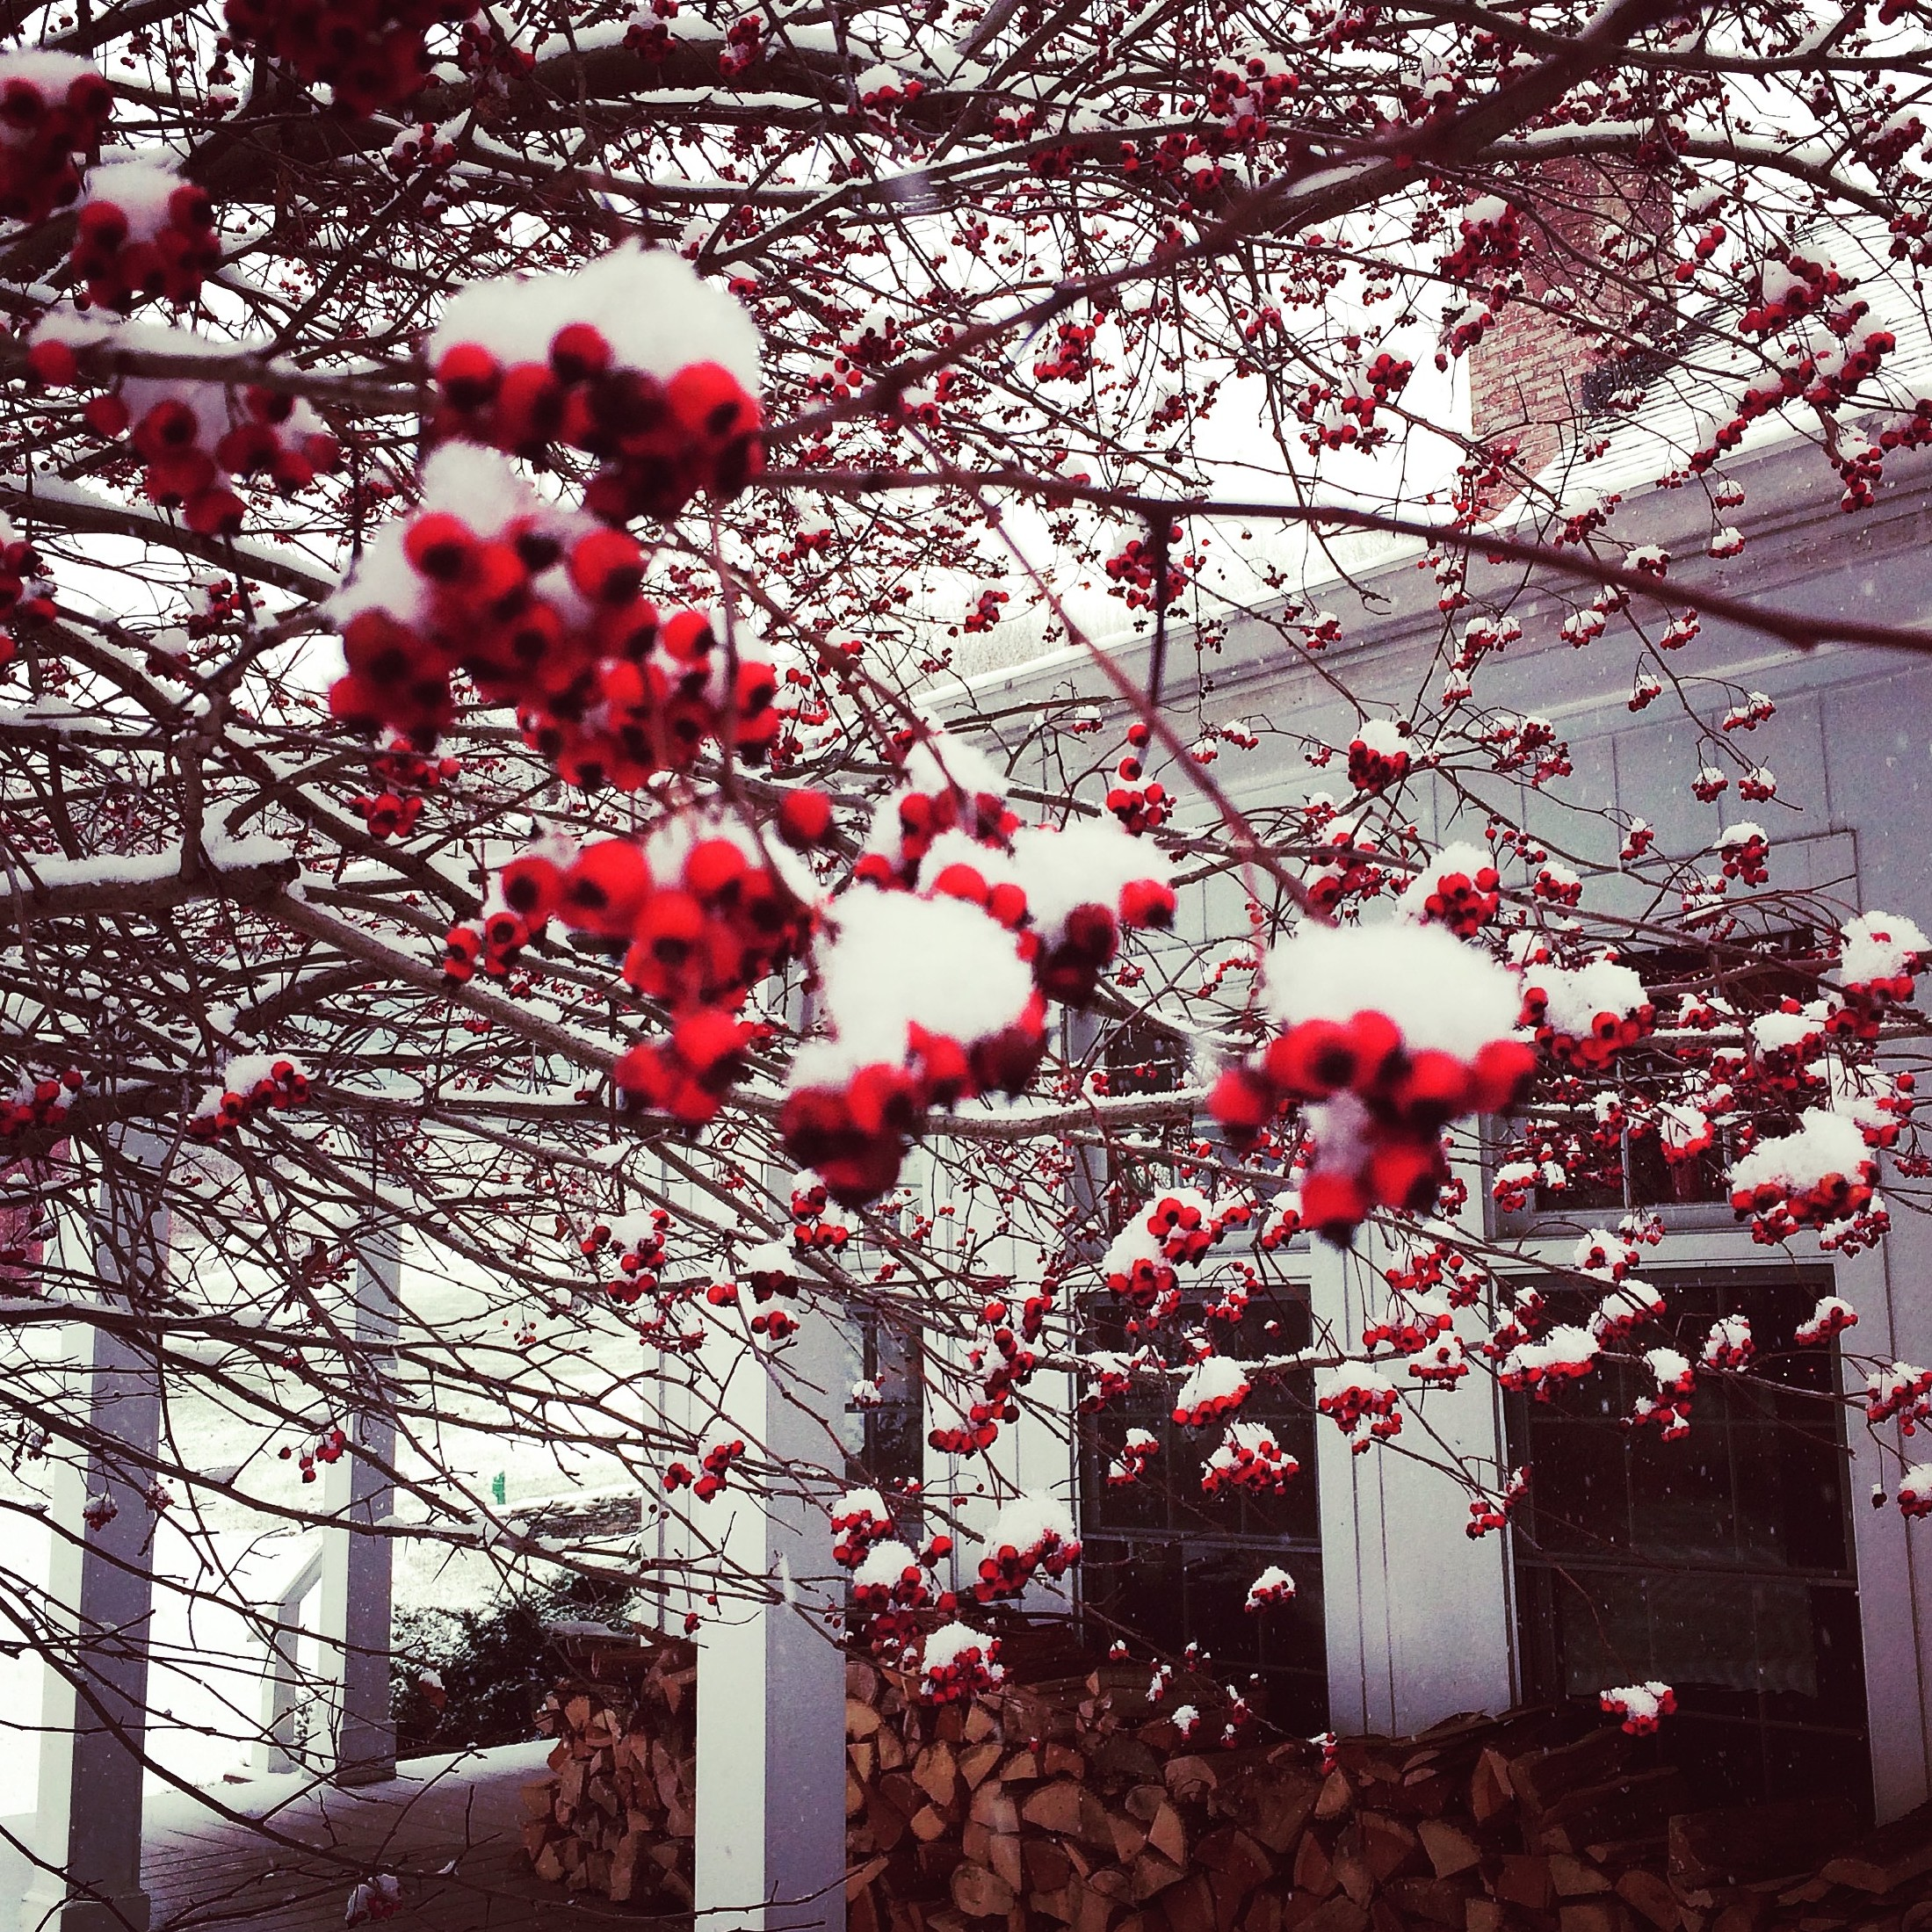 Photo of the hawthorn tree in front of the porch of the Inn.  The hawthorne has red berries and everything is covered in a layer of white snow.